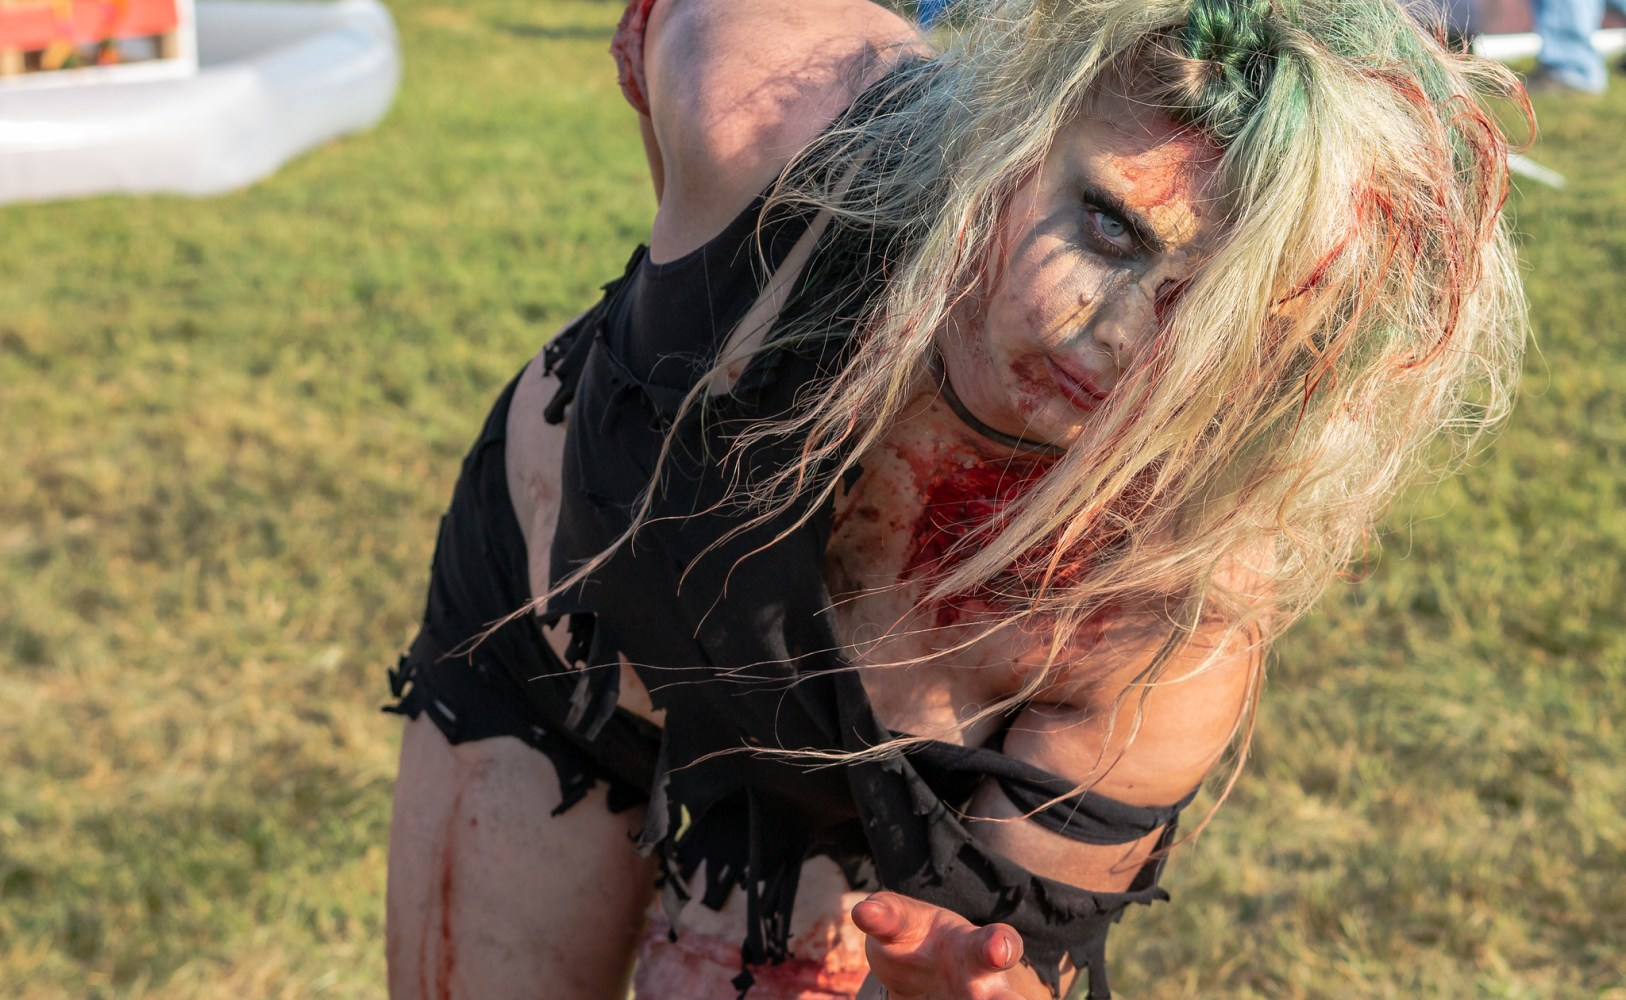 PREVIEW Inkcarceration Festival Day 2 - Mansfield, OH - 7/14/18